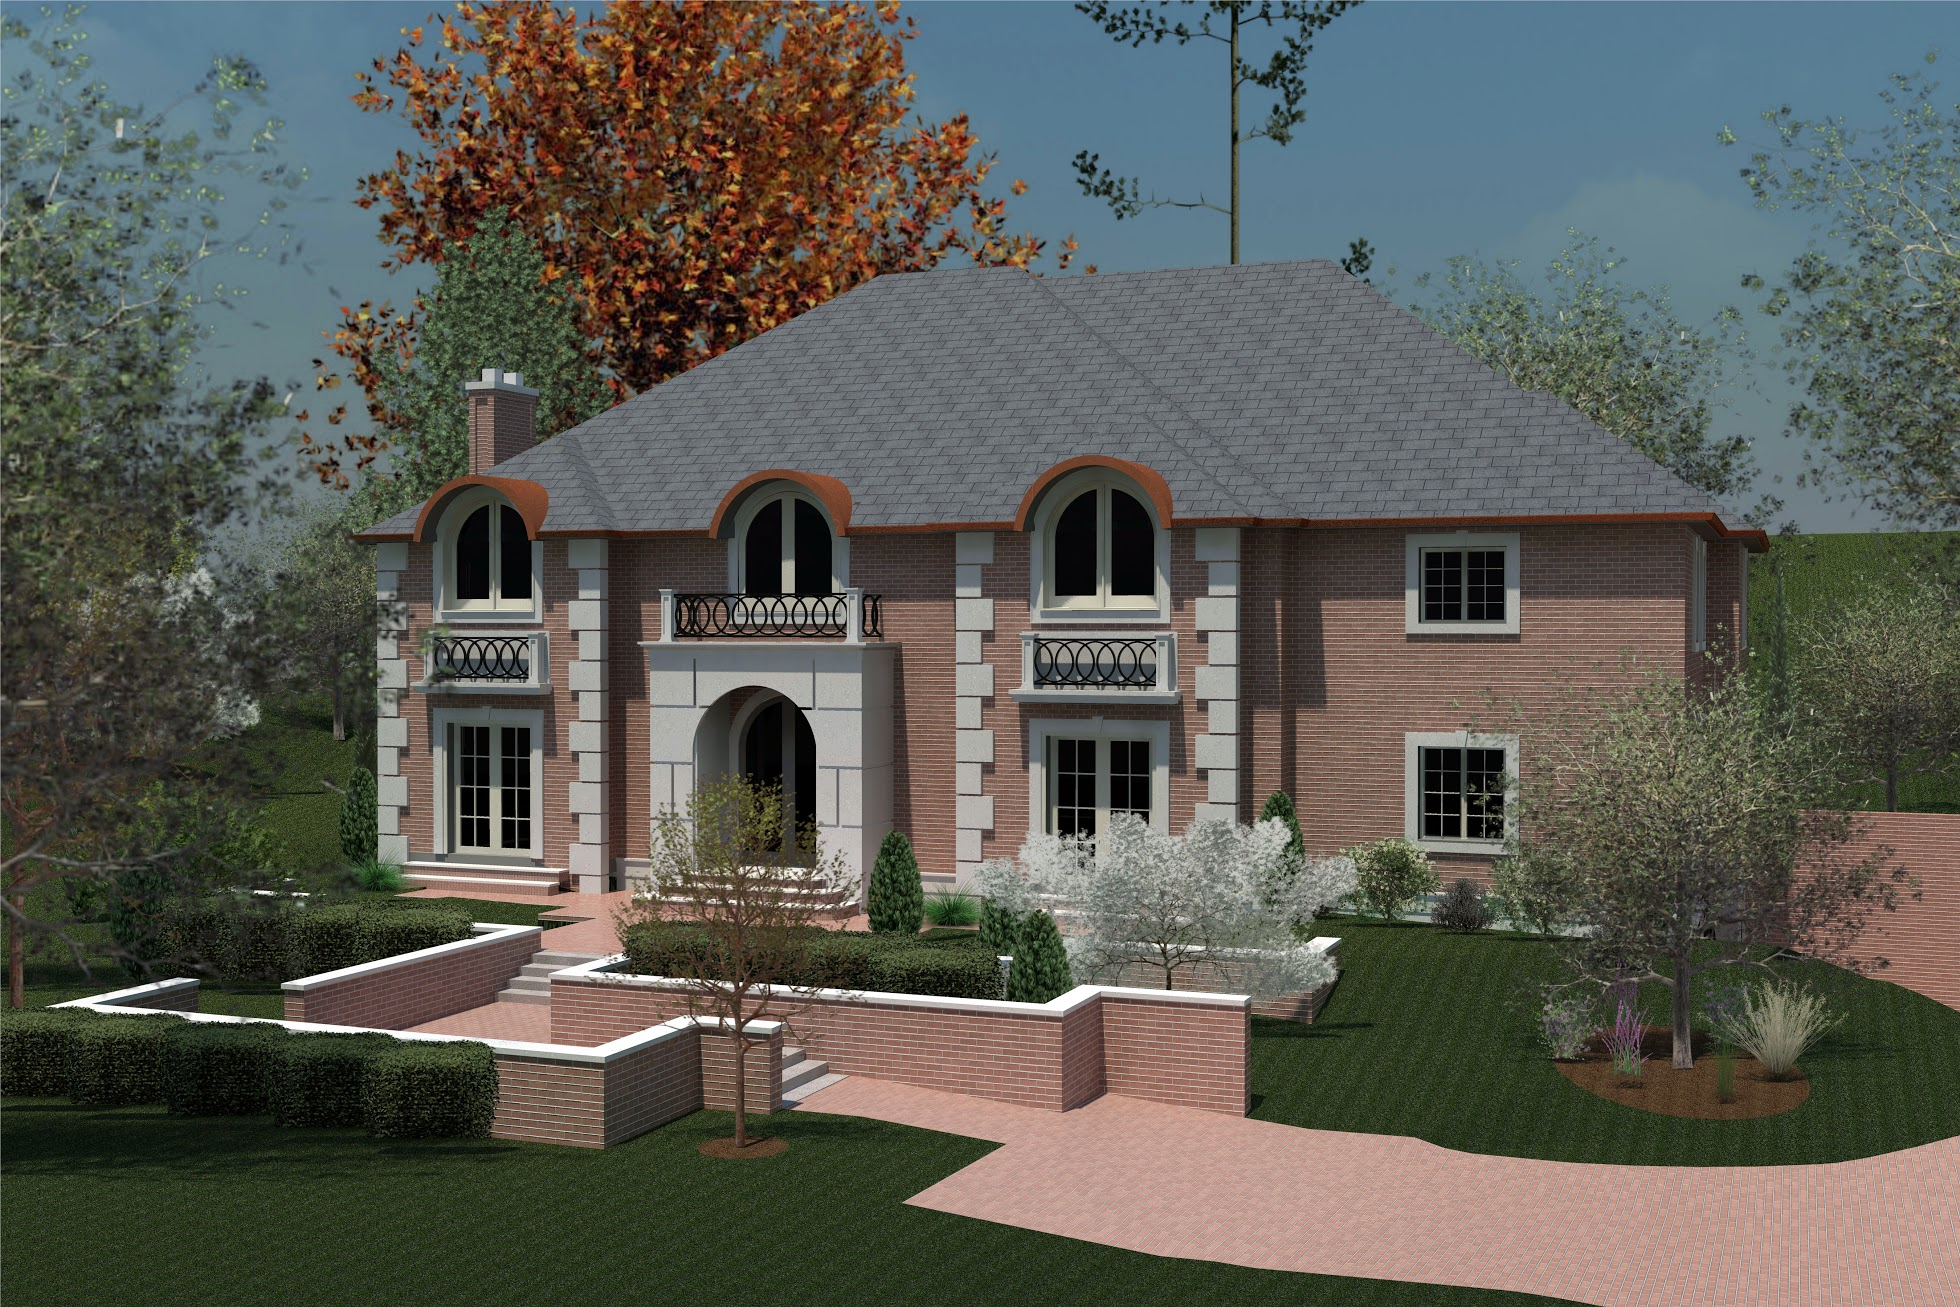 Single Family Home for Sale at Colonial - New Construction 717 Motts Cove Rd N. Roslyn Harbor, New York, 11576 United States